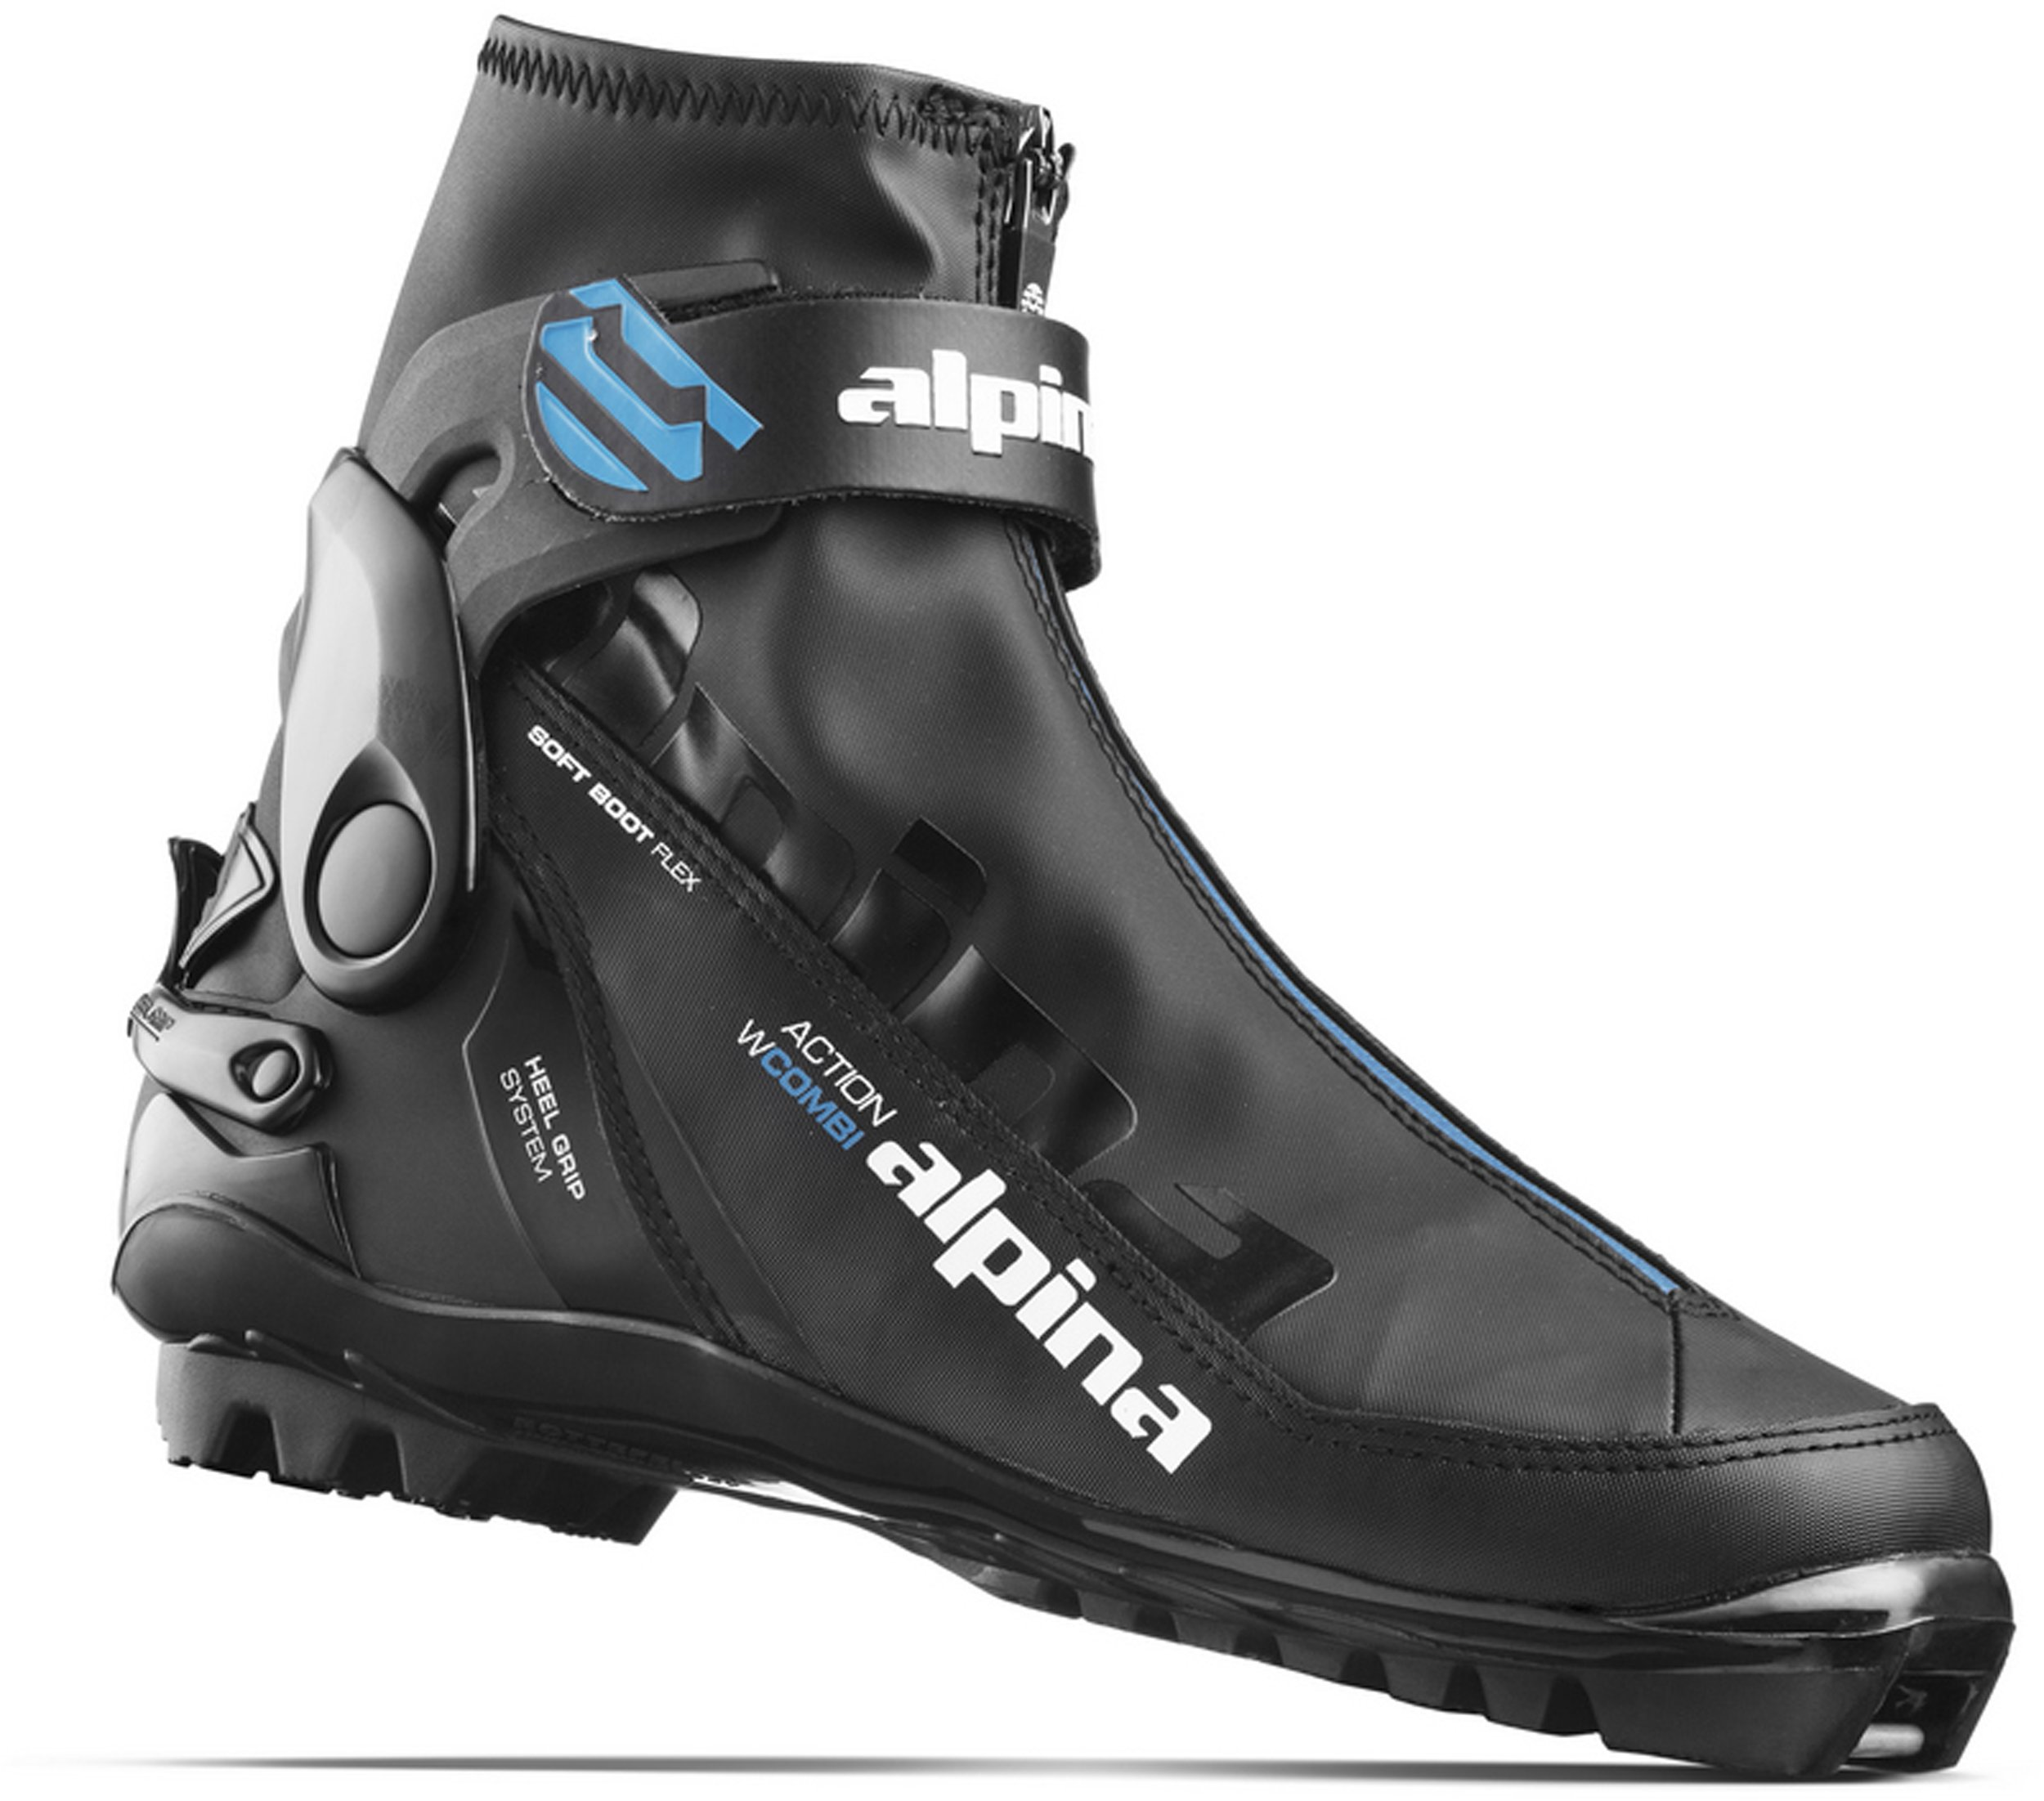 Alpina Sports Women's A Combi Eve Classic Cross Country Ski Boots, Black/Blue/White, Euro 38 by Alpina